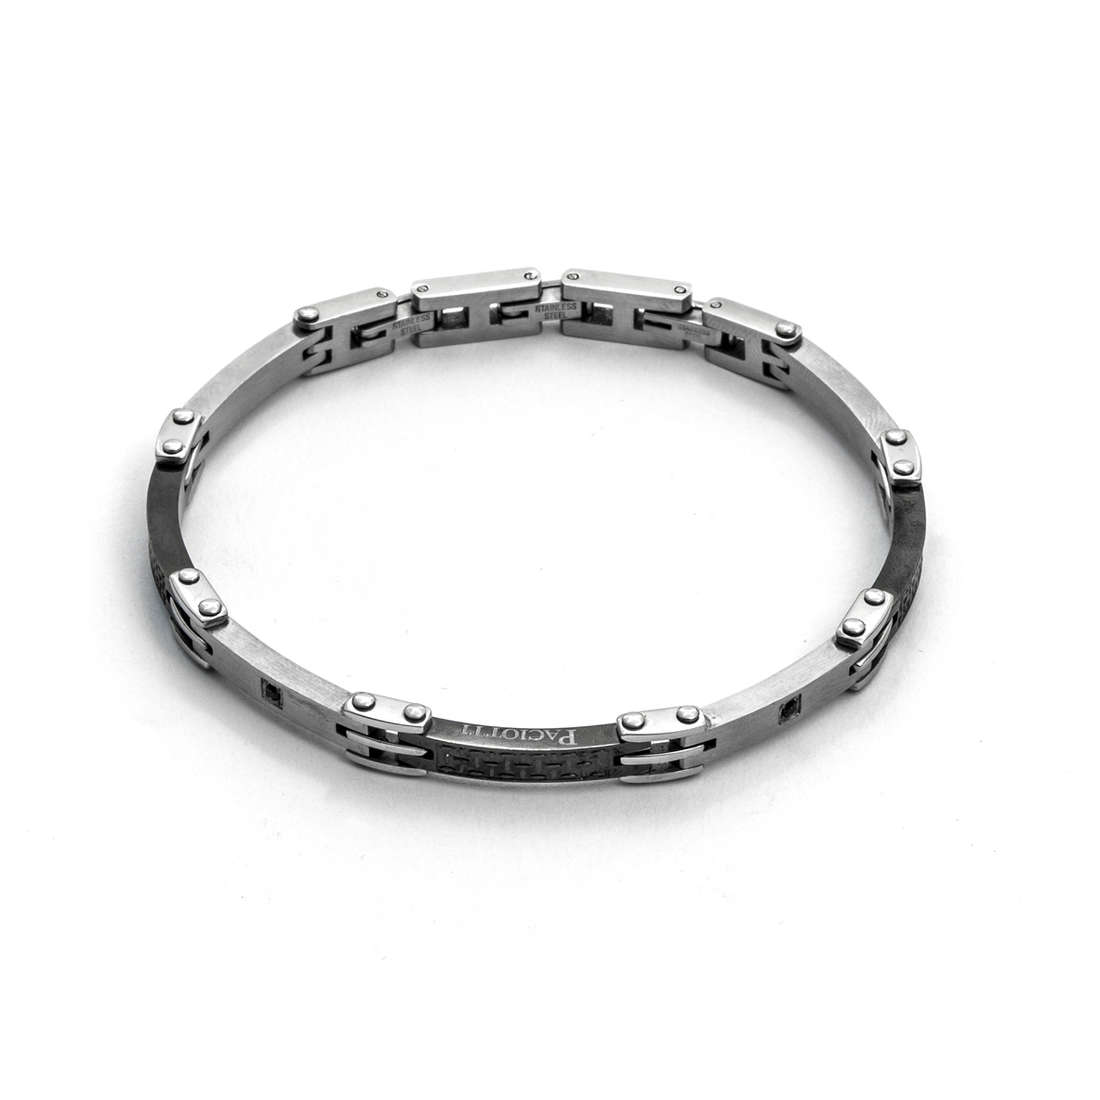 bracelet man jewellery 4US Cesare Paciotti 4Us Jewels 4UBR1520